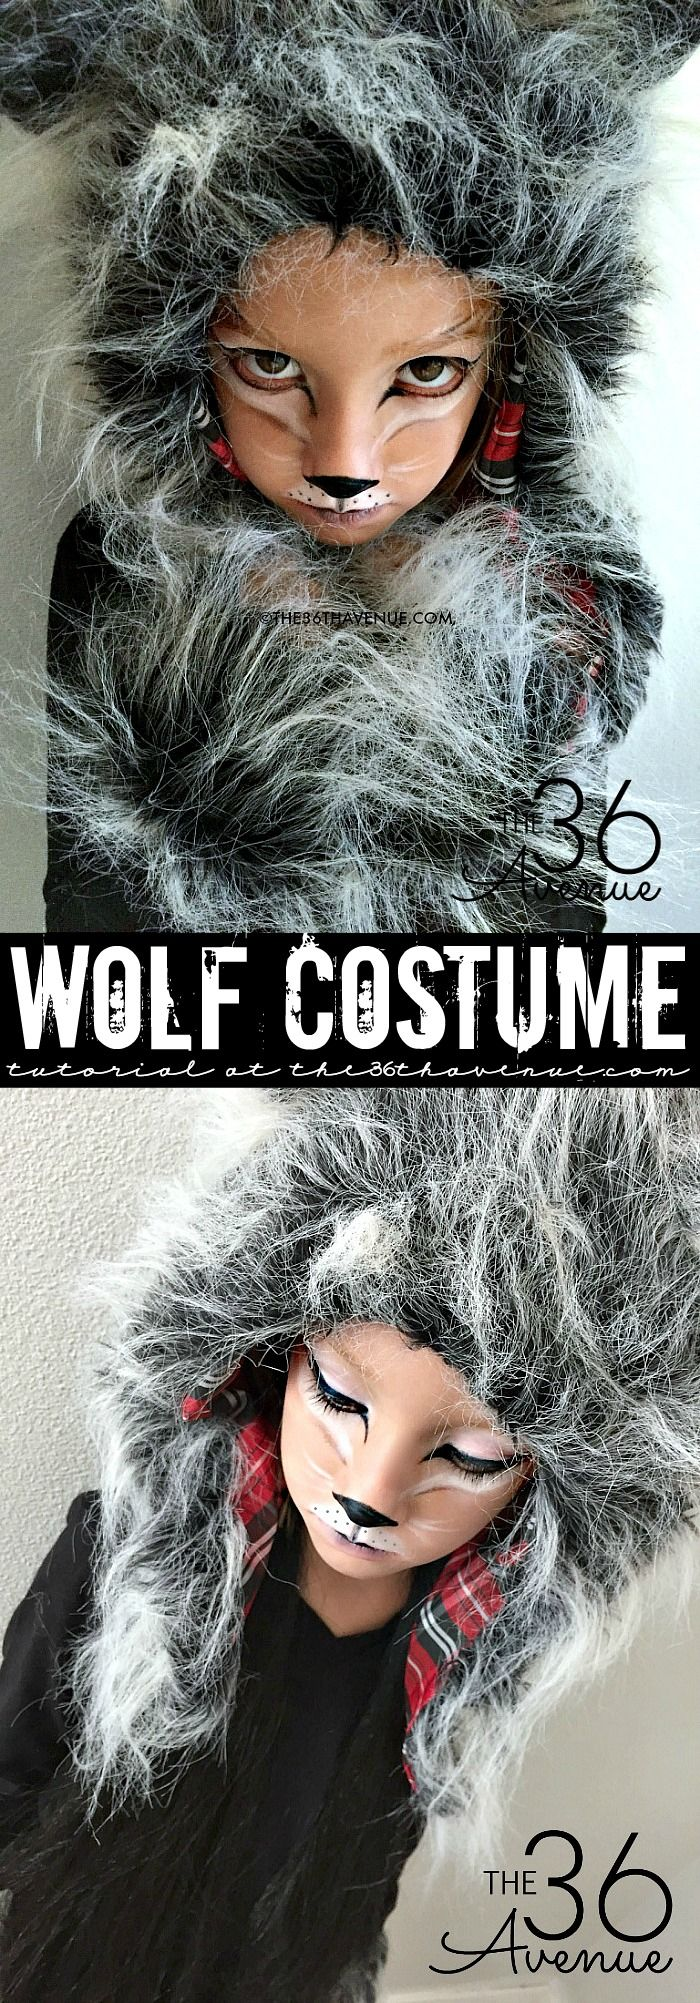 Halloween Costumes - This Wolf Costume is supers cute, comfortable and perfect for kids and adults. You can do this DIY Wolf Makeup with items that you may already have at home!: